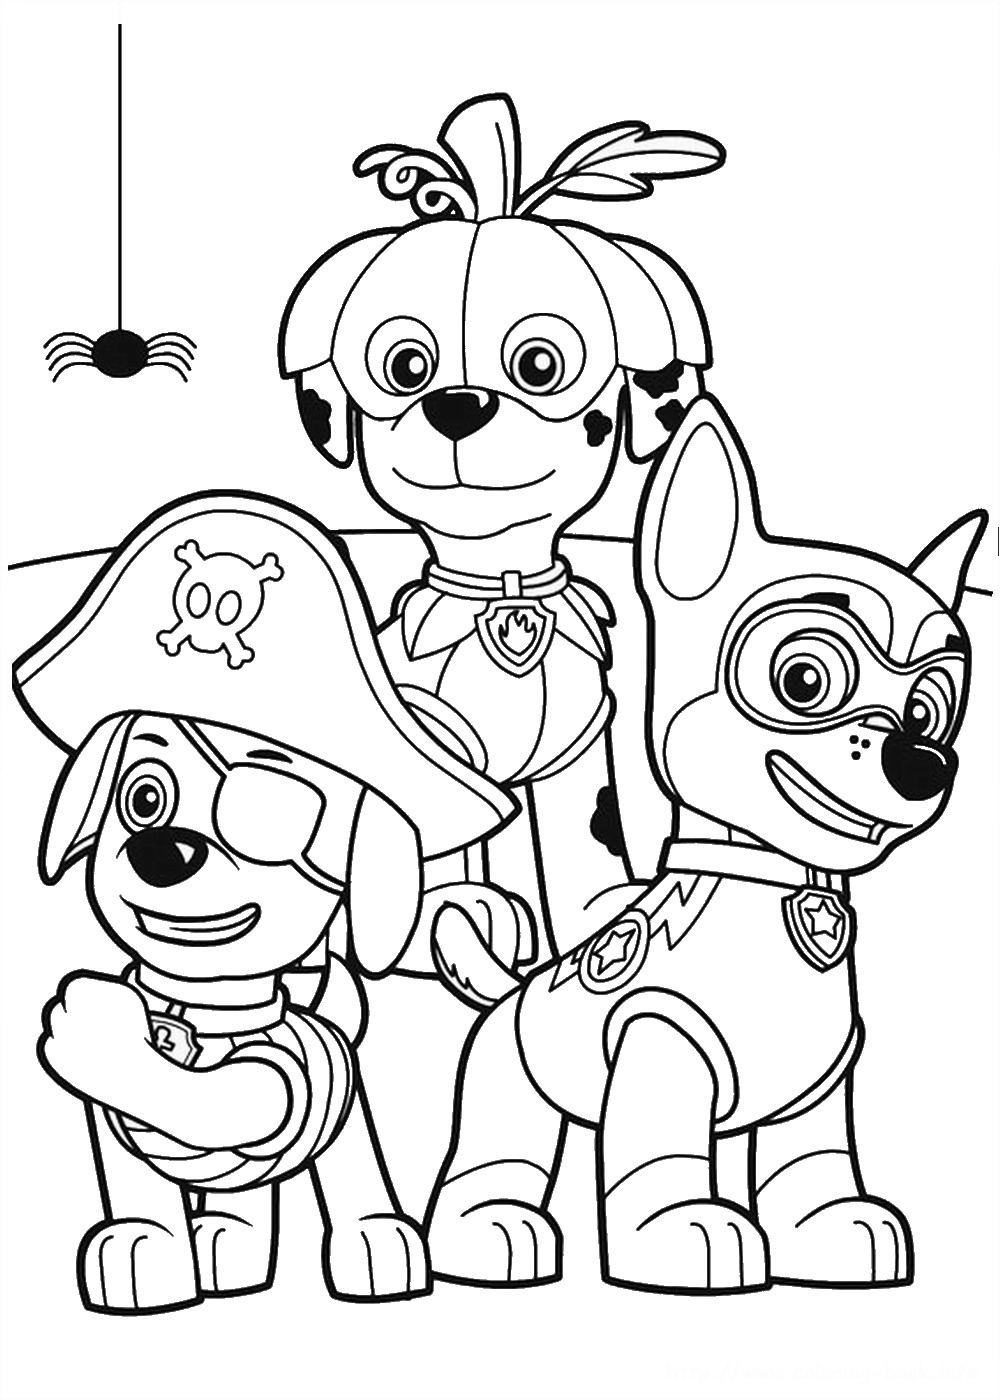 paw patrol coloring sheets printable paw patrol coloring pages coloring home coloring printable sheets patrol paw